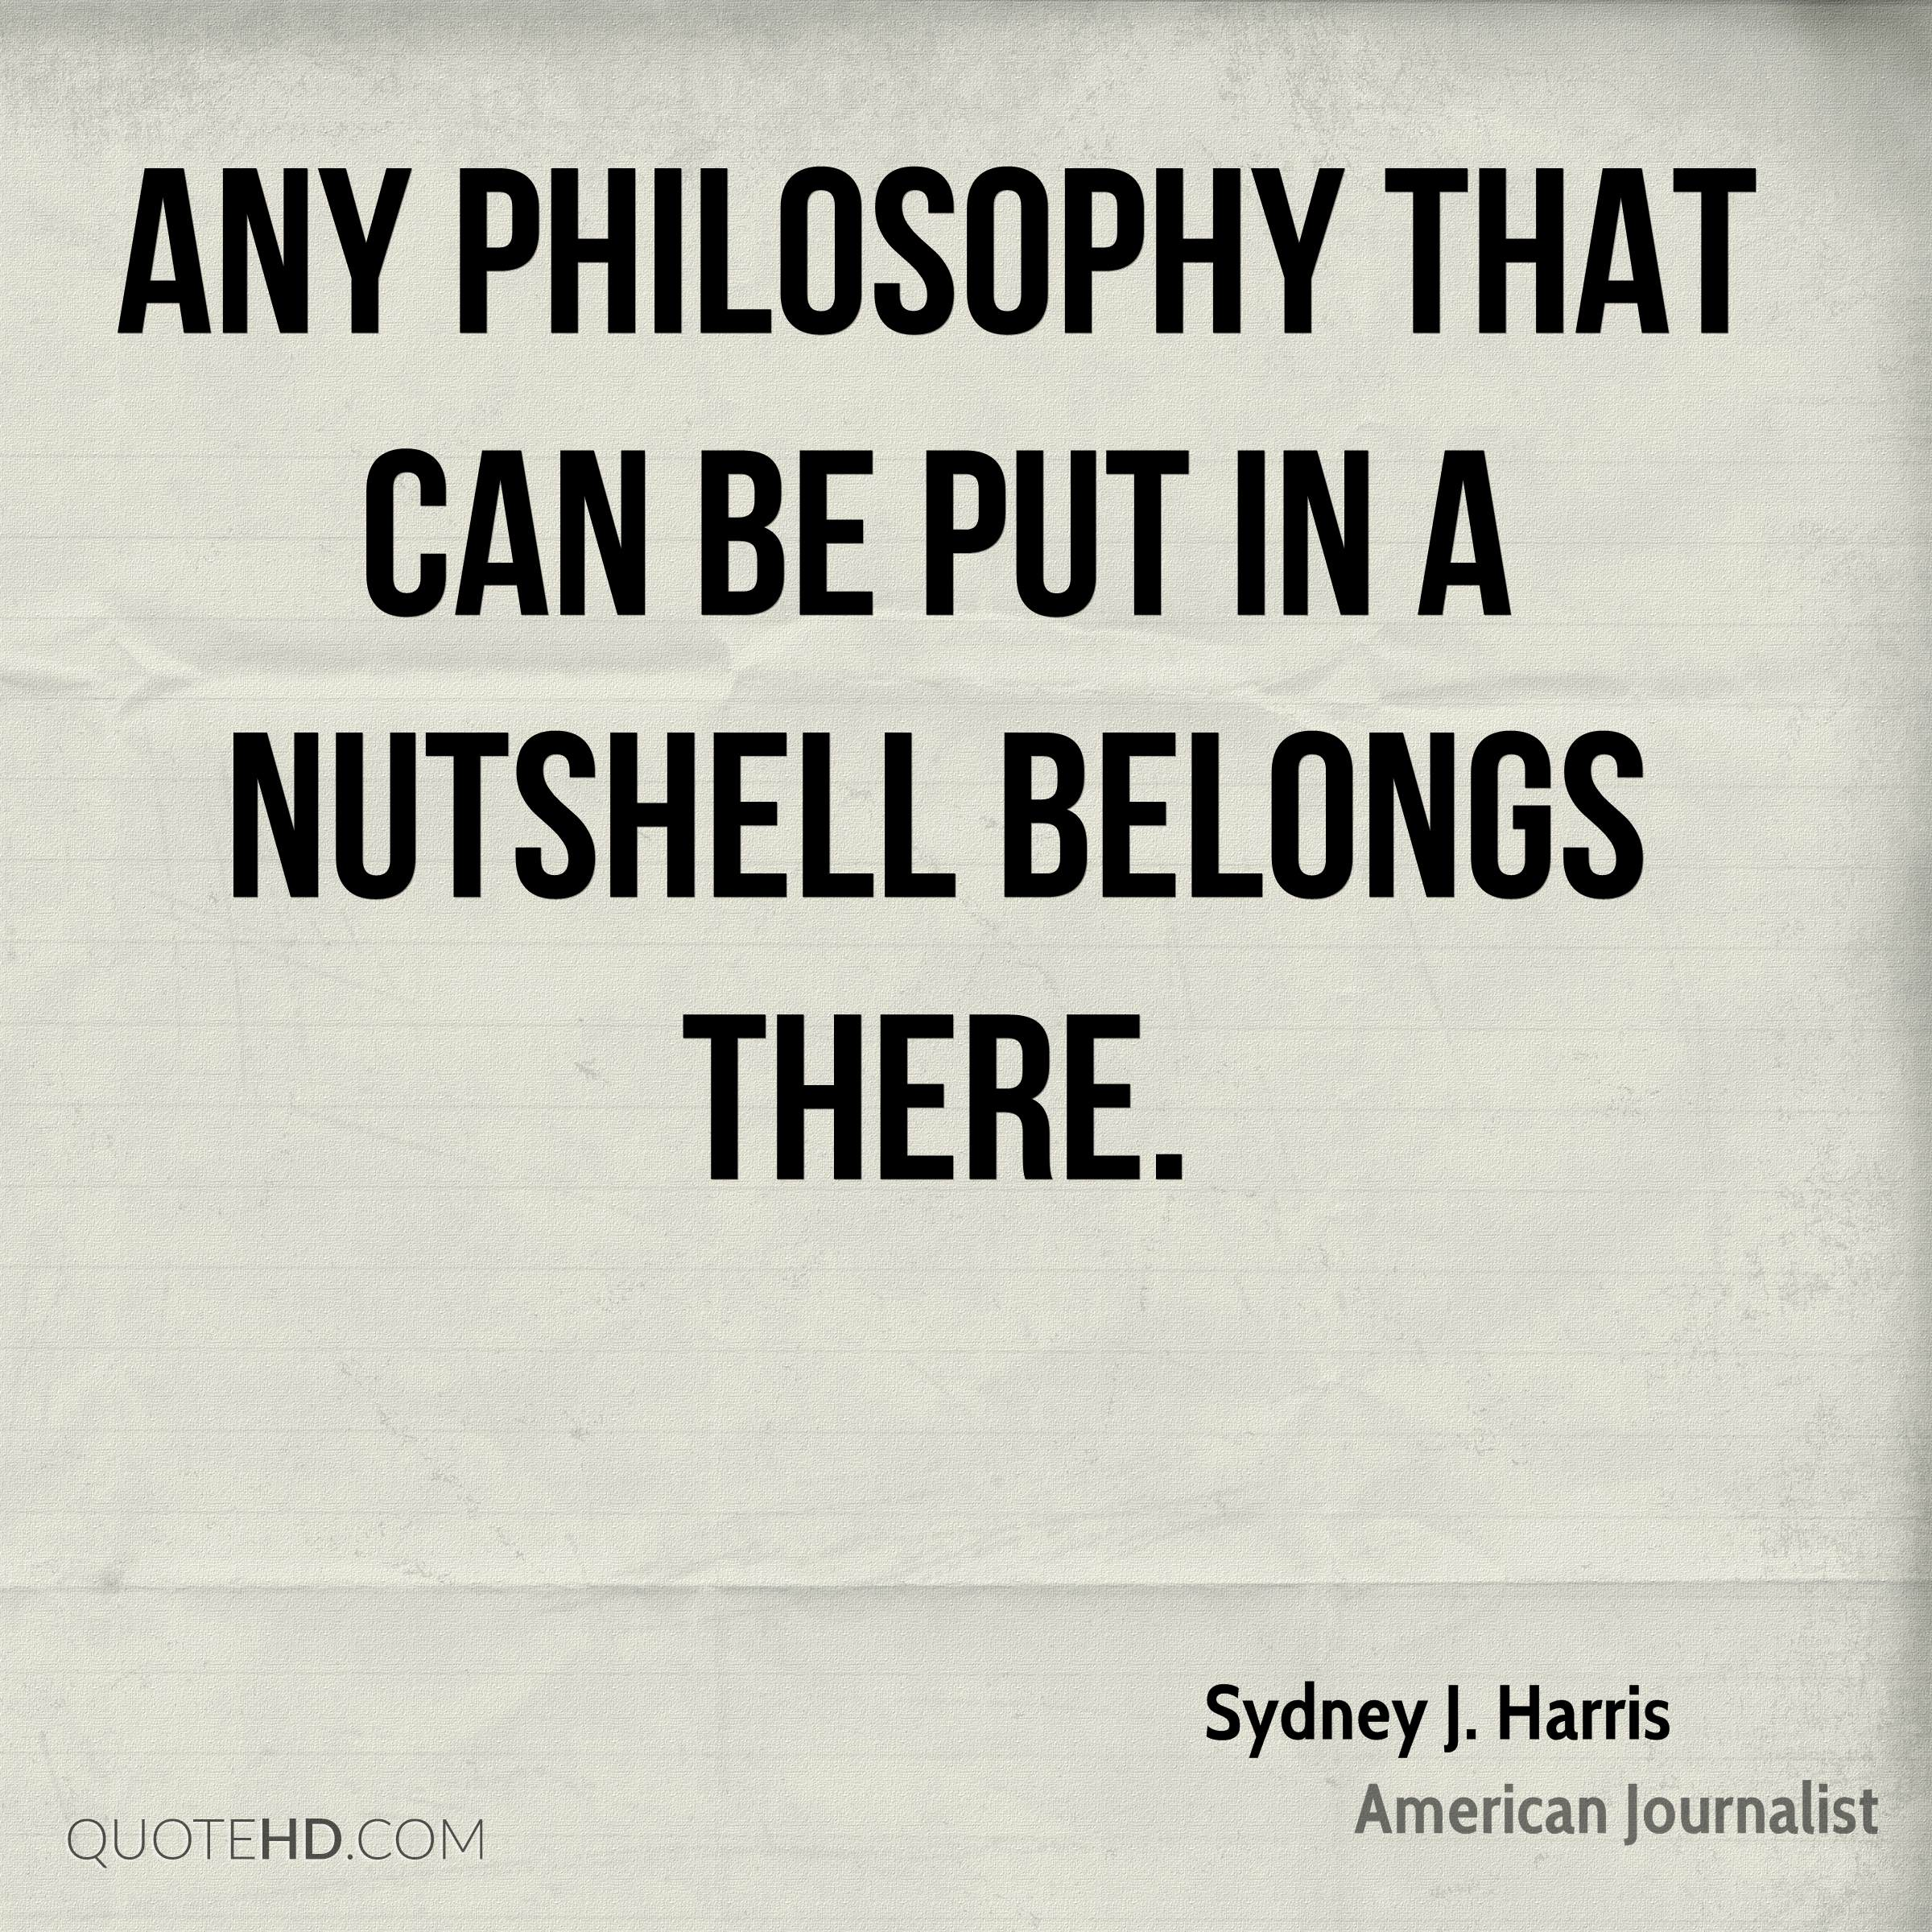 Any philosophy that can be put in a nutshell belongs there.